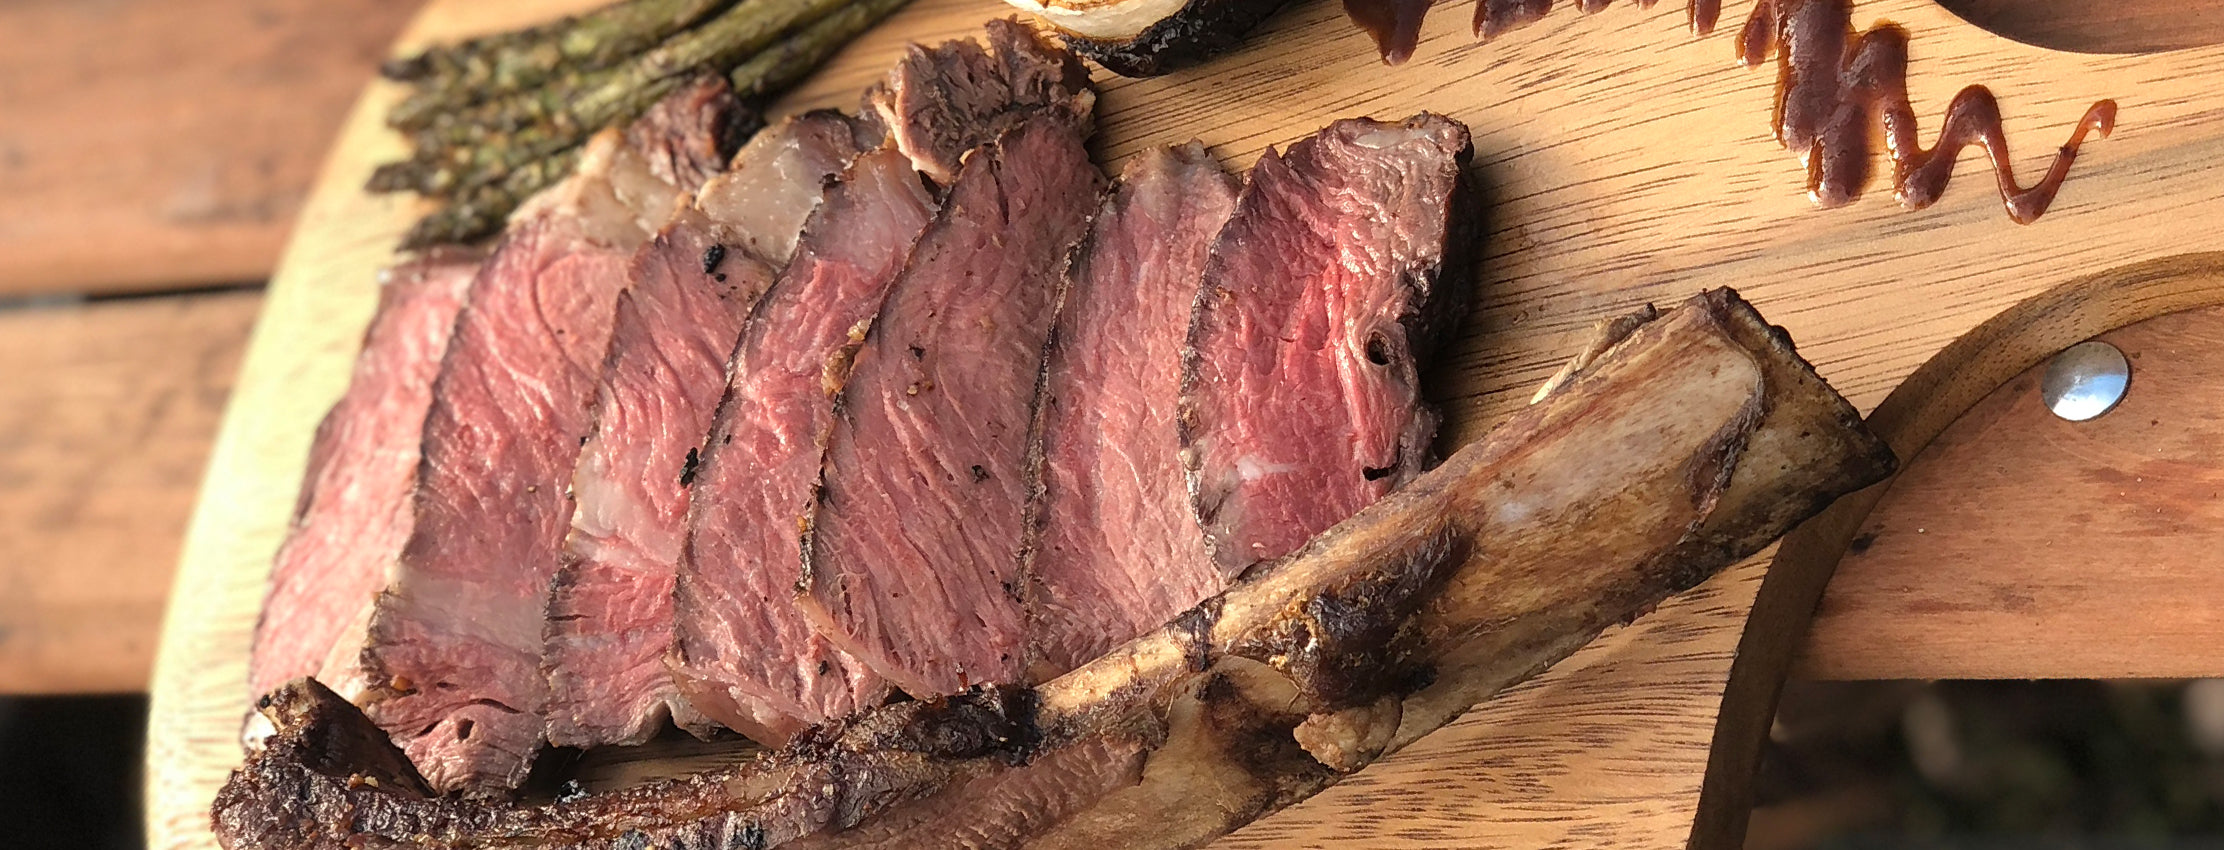 Cowboy Steak with Asparagus and Onion